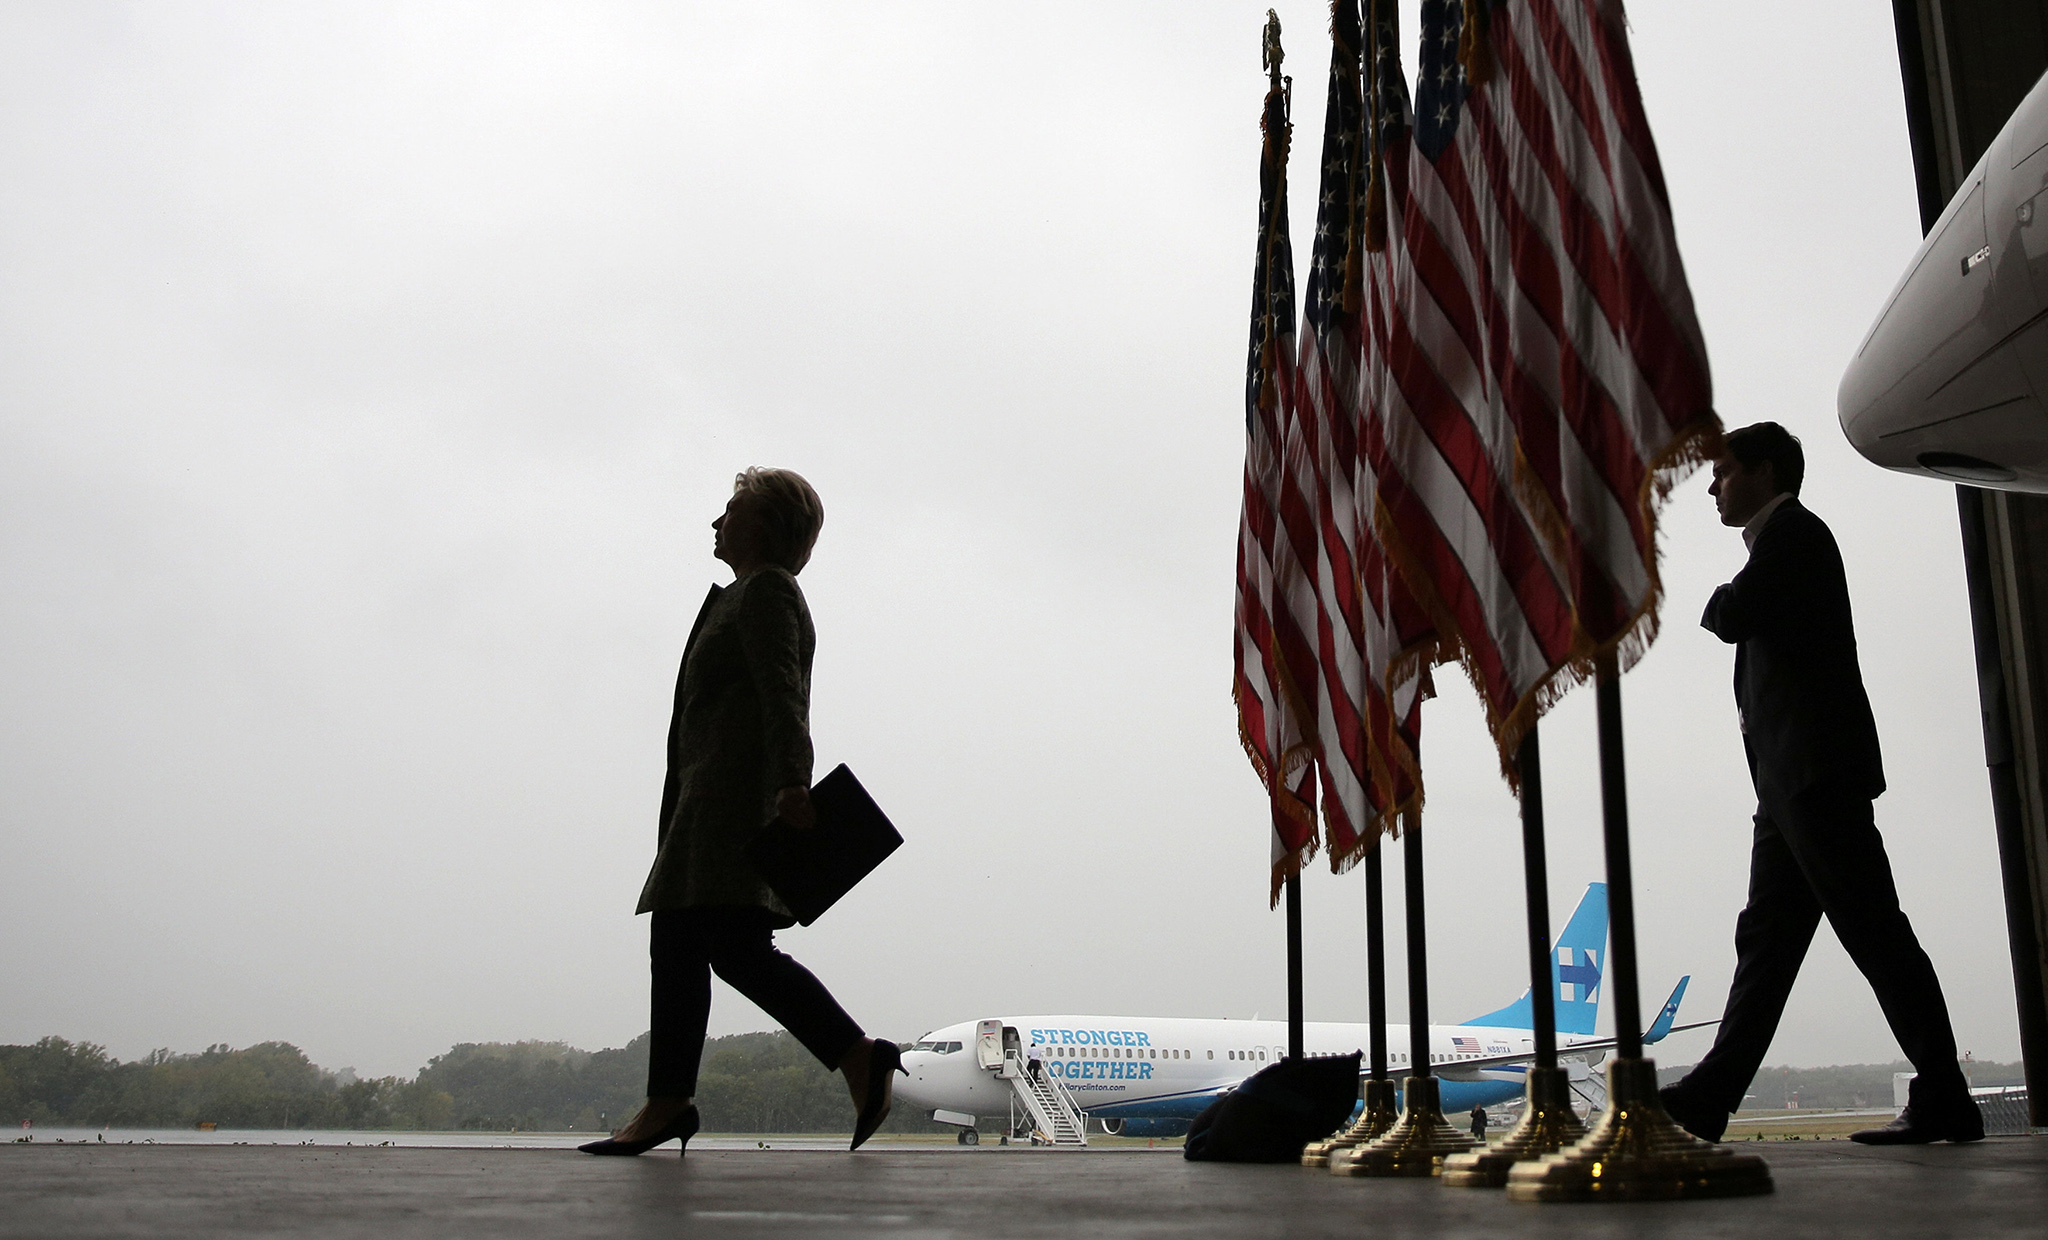 U.S. Democratic presidential candidate Hillary Clinton arrives to a press briefing before boarding her campaign plane at the Westchester County airport in White Plains, New York, U.S. September 19, 2016. REUTERS/Carlos Barria